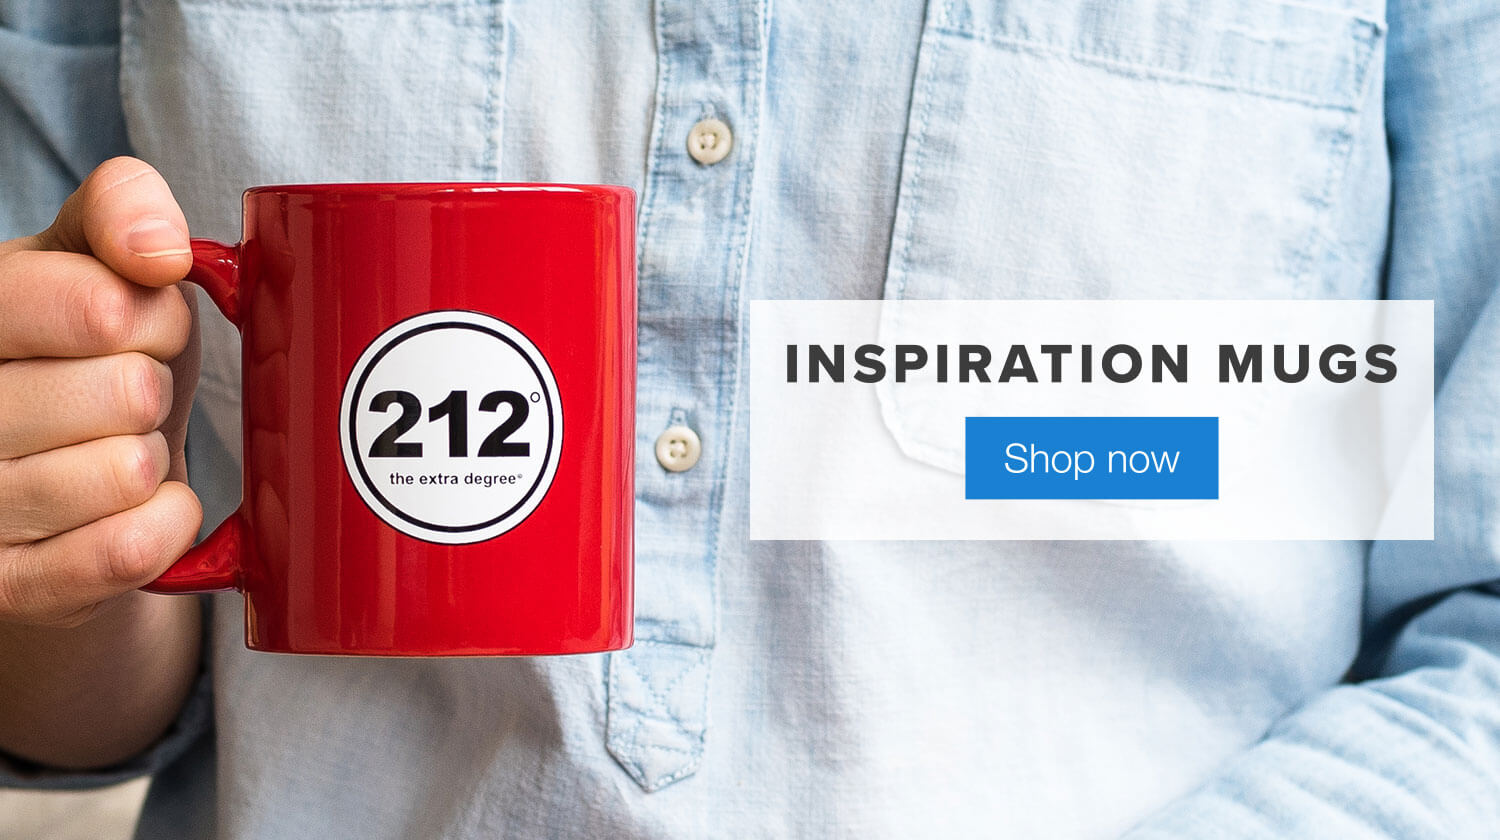 212 Mug. Inspiring Mugs. Shop Now.